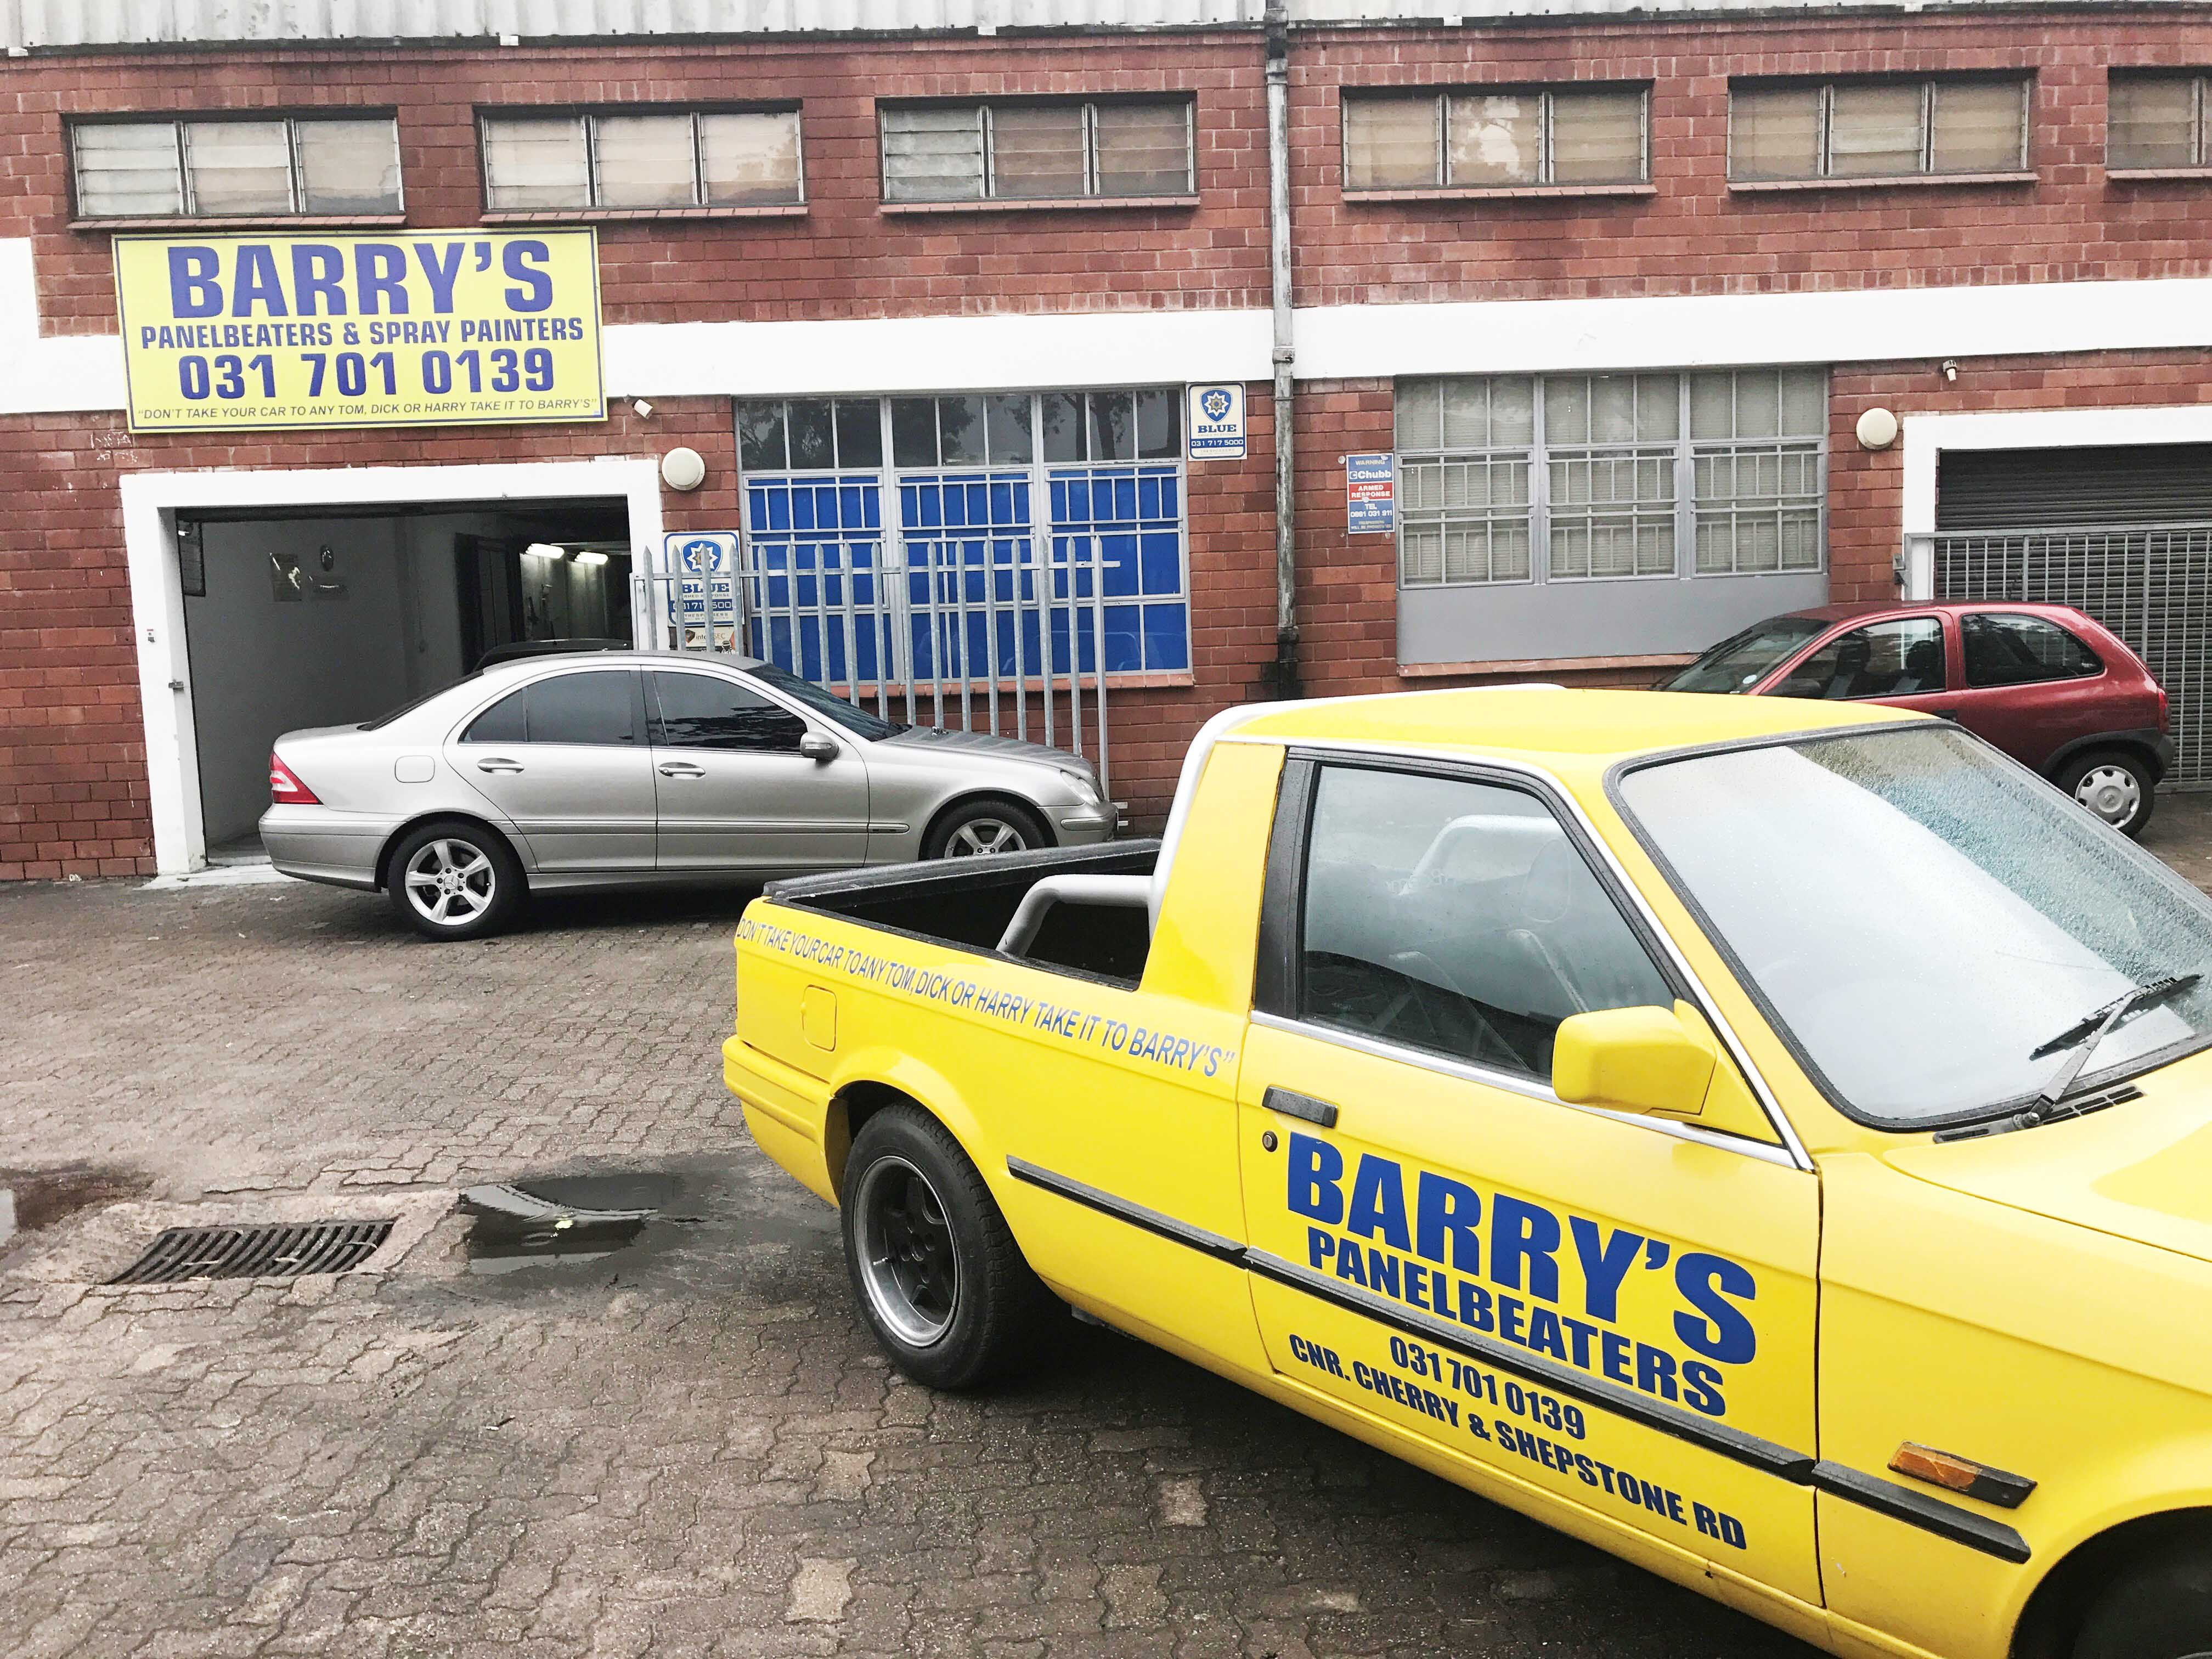 Barry's Panelbeaters Express Speed Shop